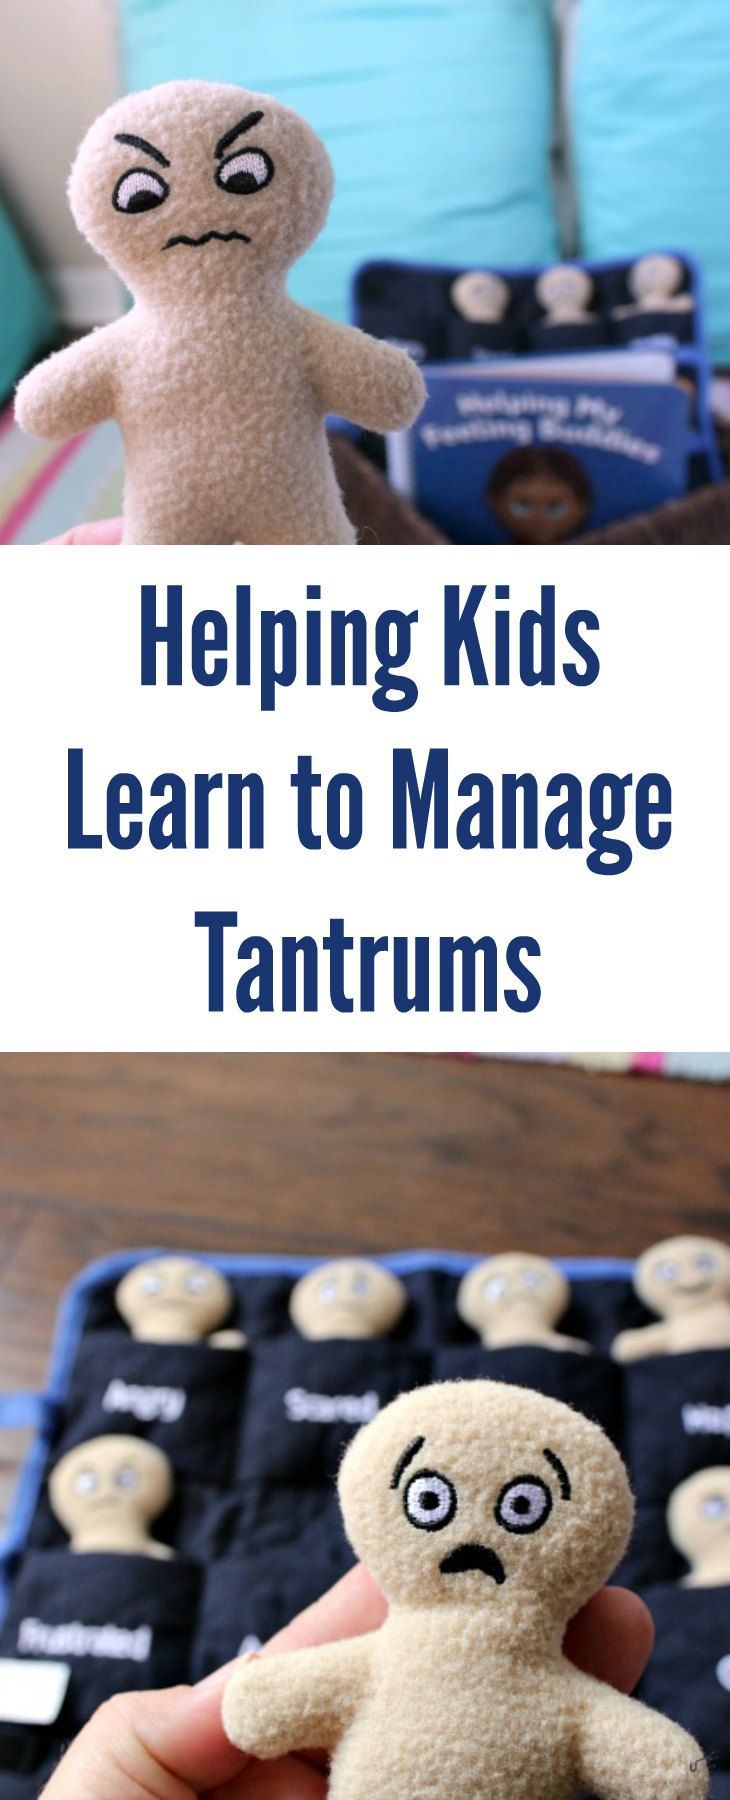 Tips for Helping Kids Learn to Manage Temper Tantrums with Feeling Buddies.  A must have parenting tool to help manage those BIG emotions as a child. AD